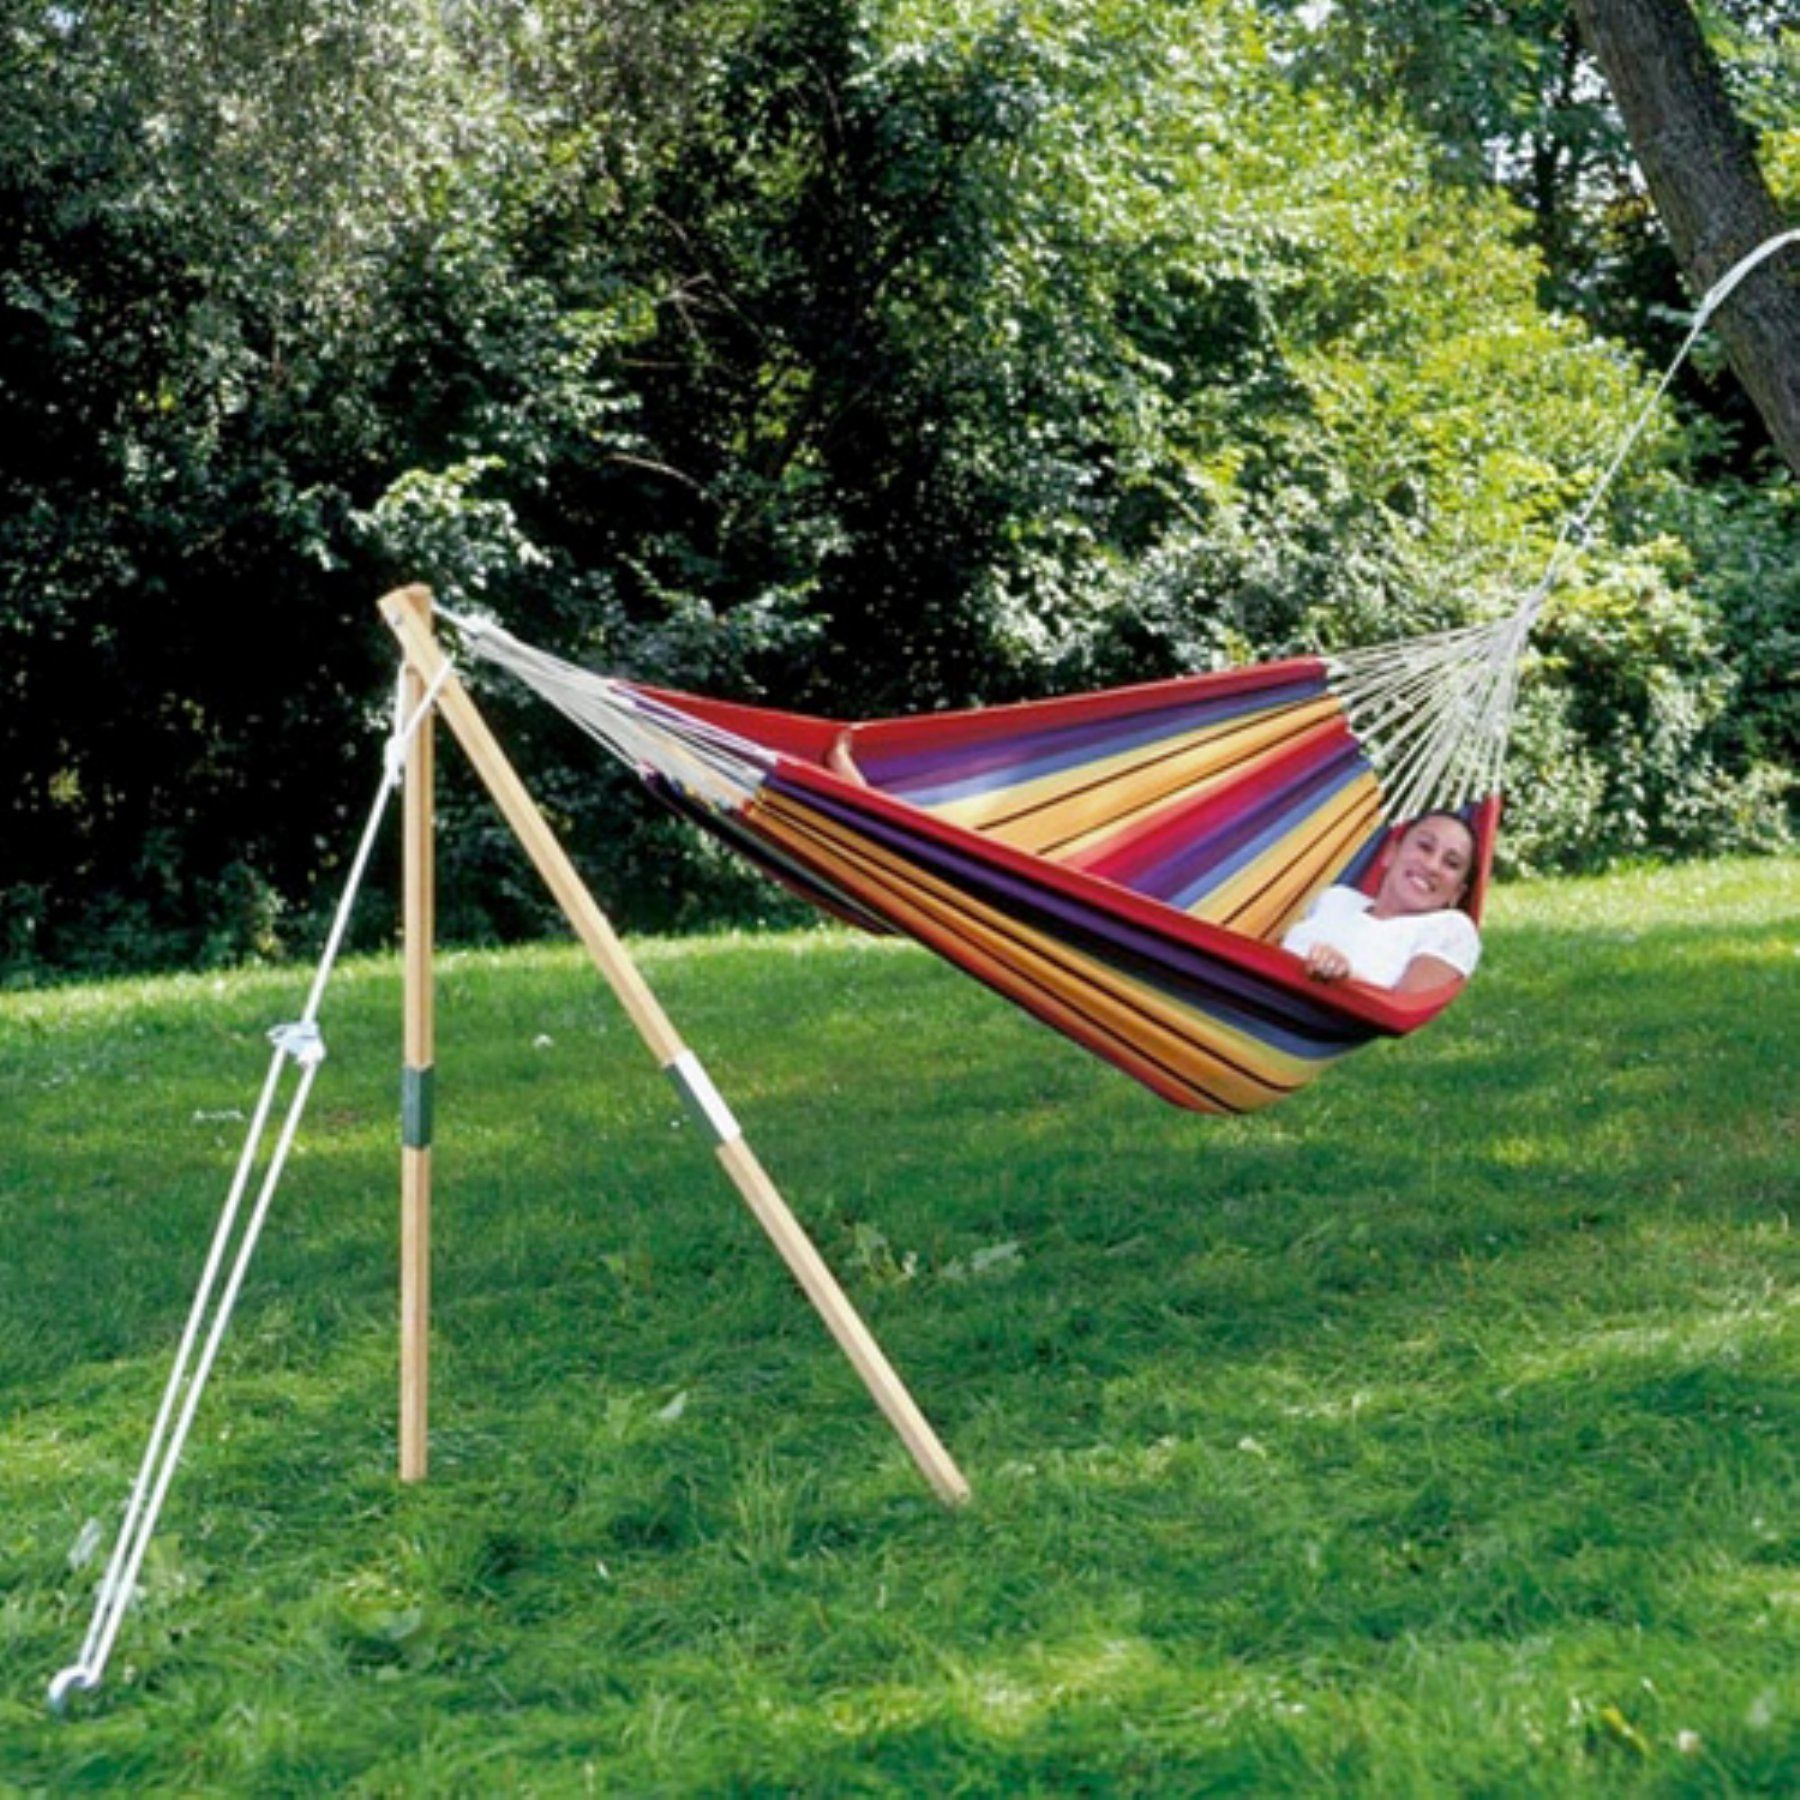 Byer of maine madera hammock stand a hammock stand products